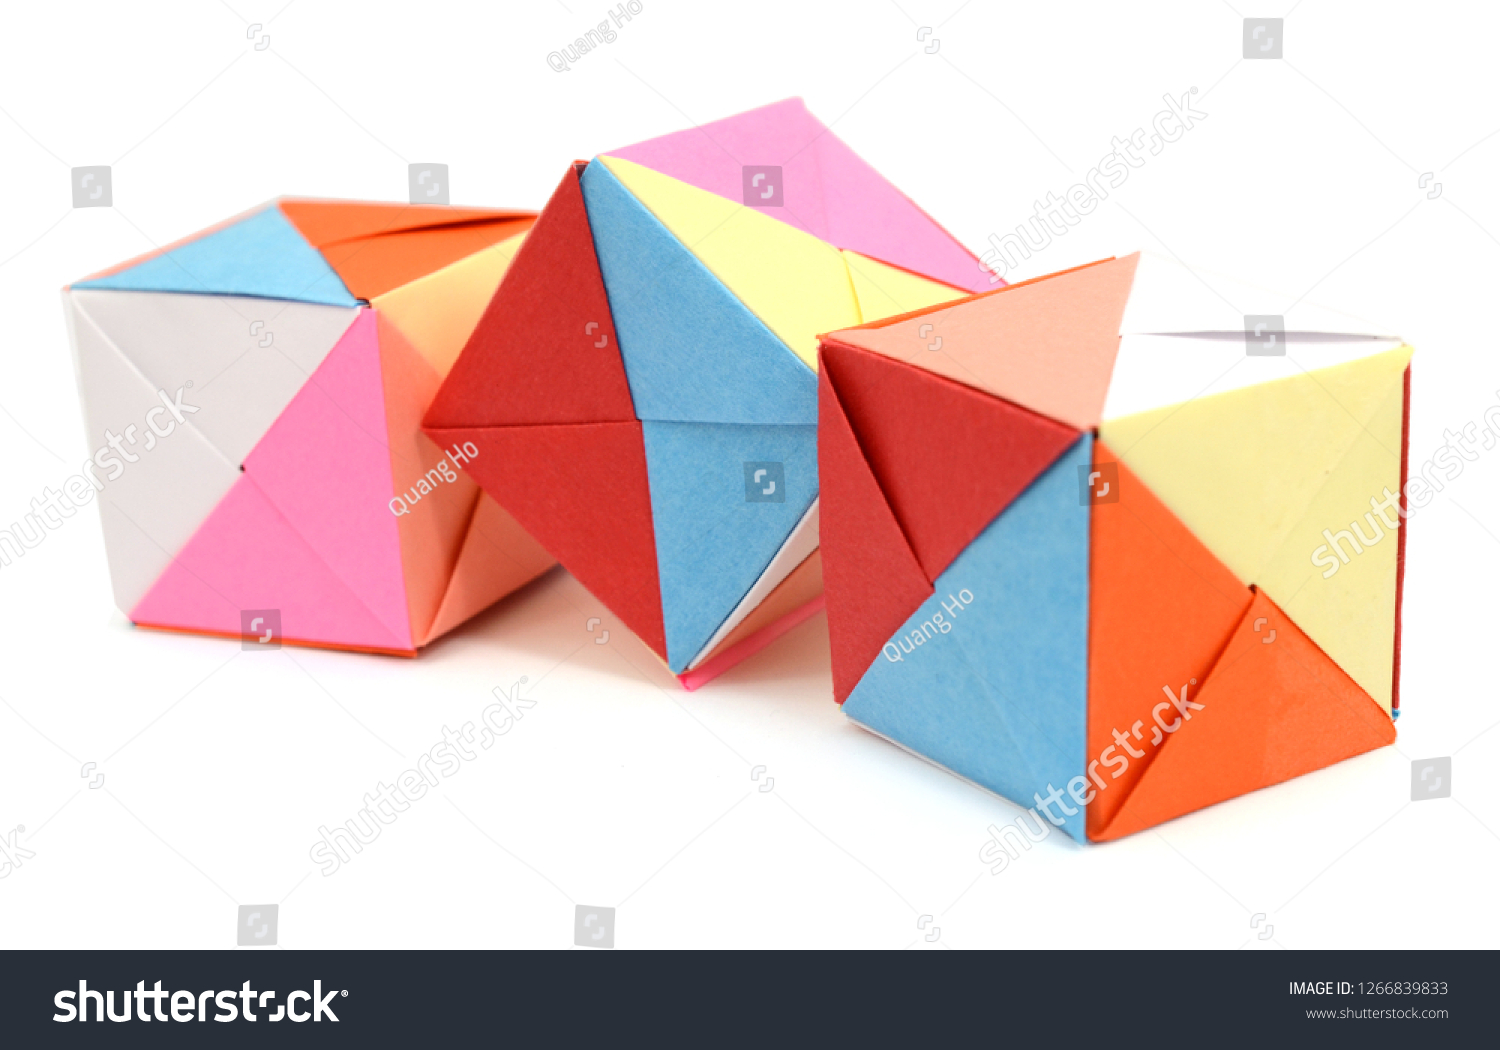 How to Make an Origami Cube Using 6 Pieces of Paper : 25 Steps ... | 1050x1500